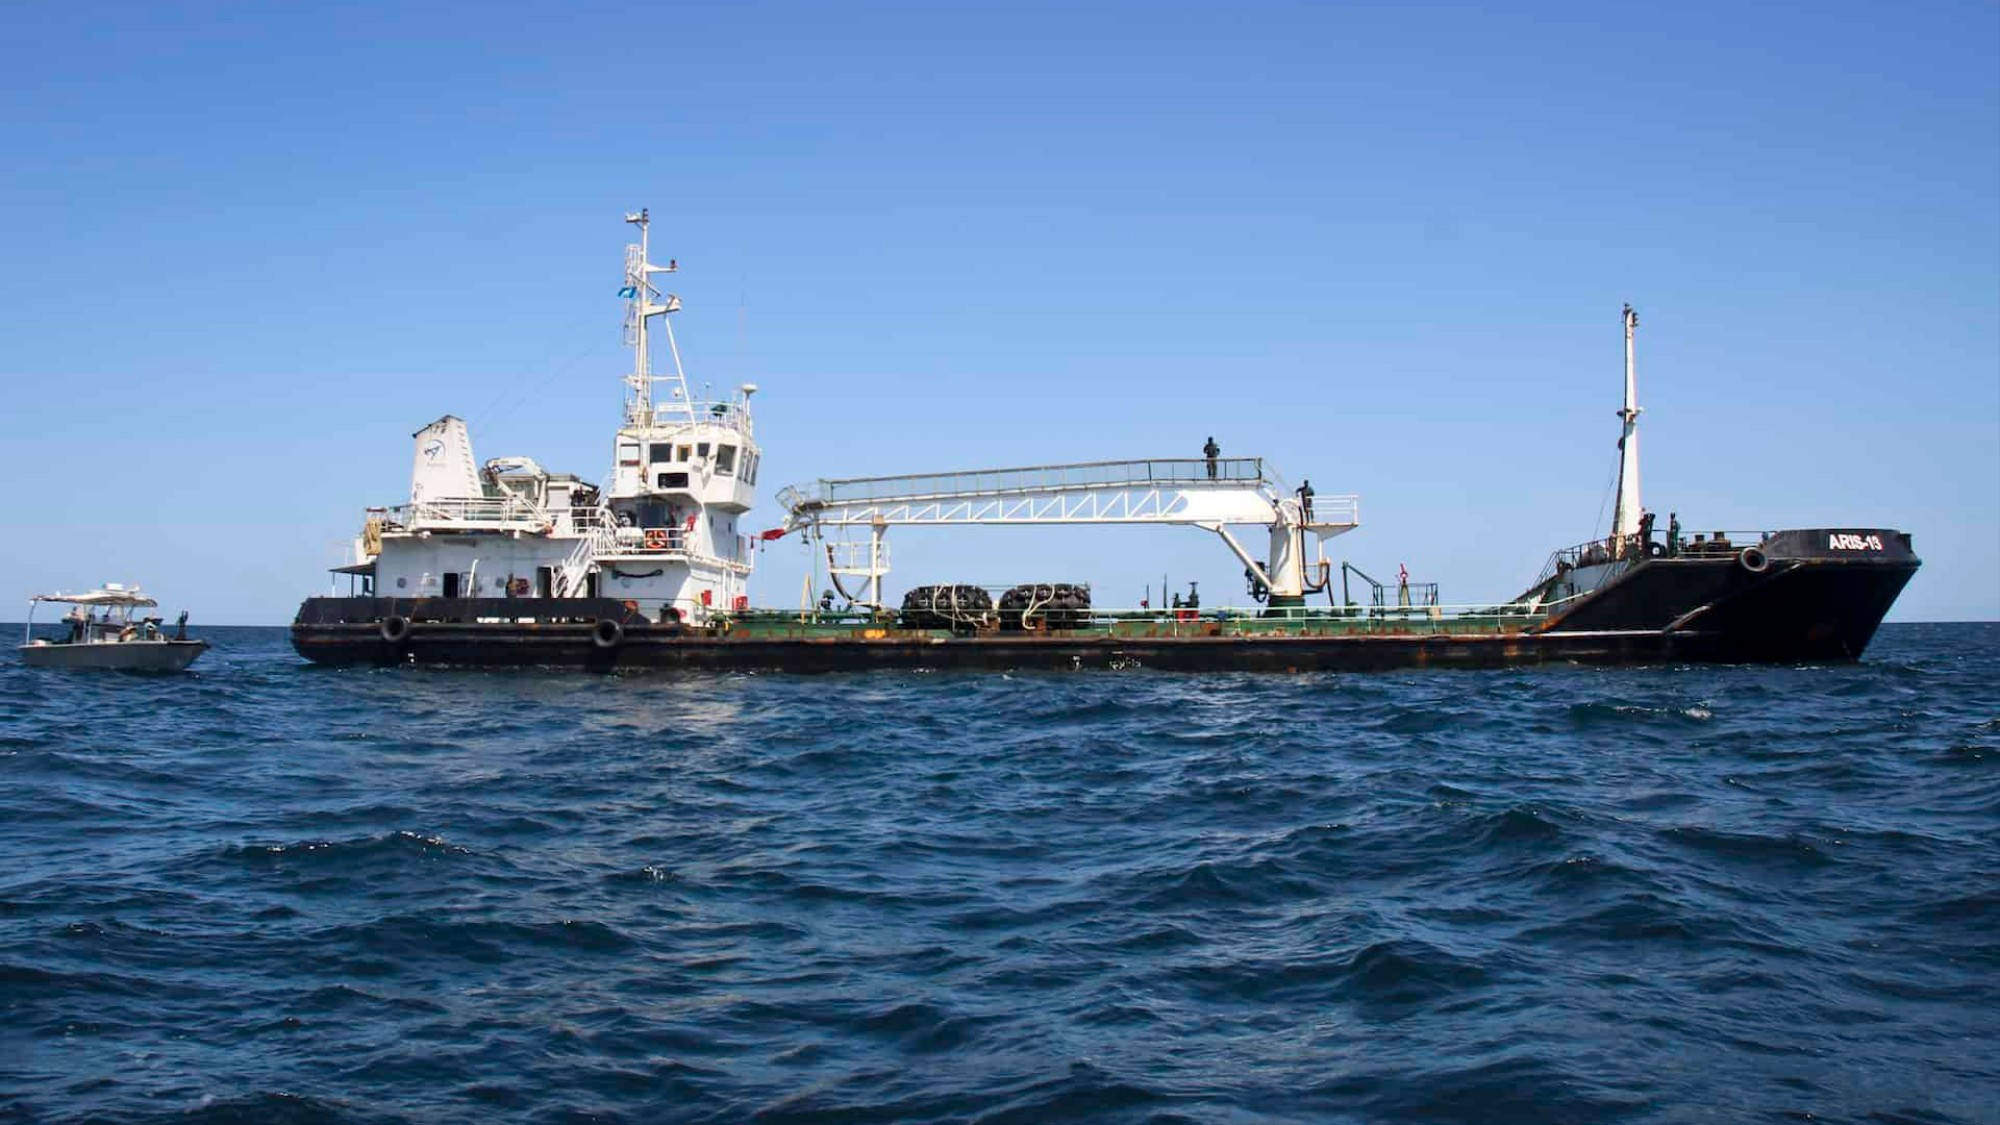 Somali pirates hijacked a second boat and have made it their